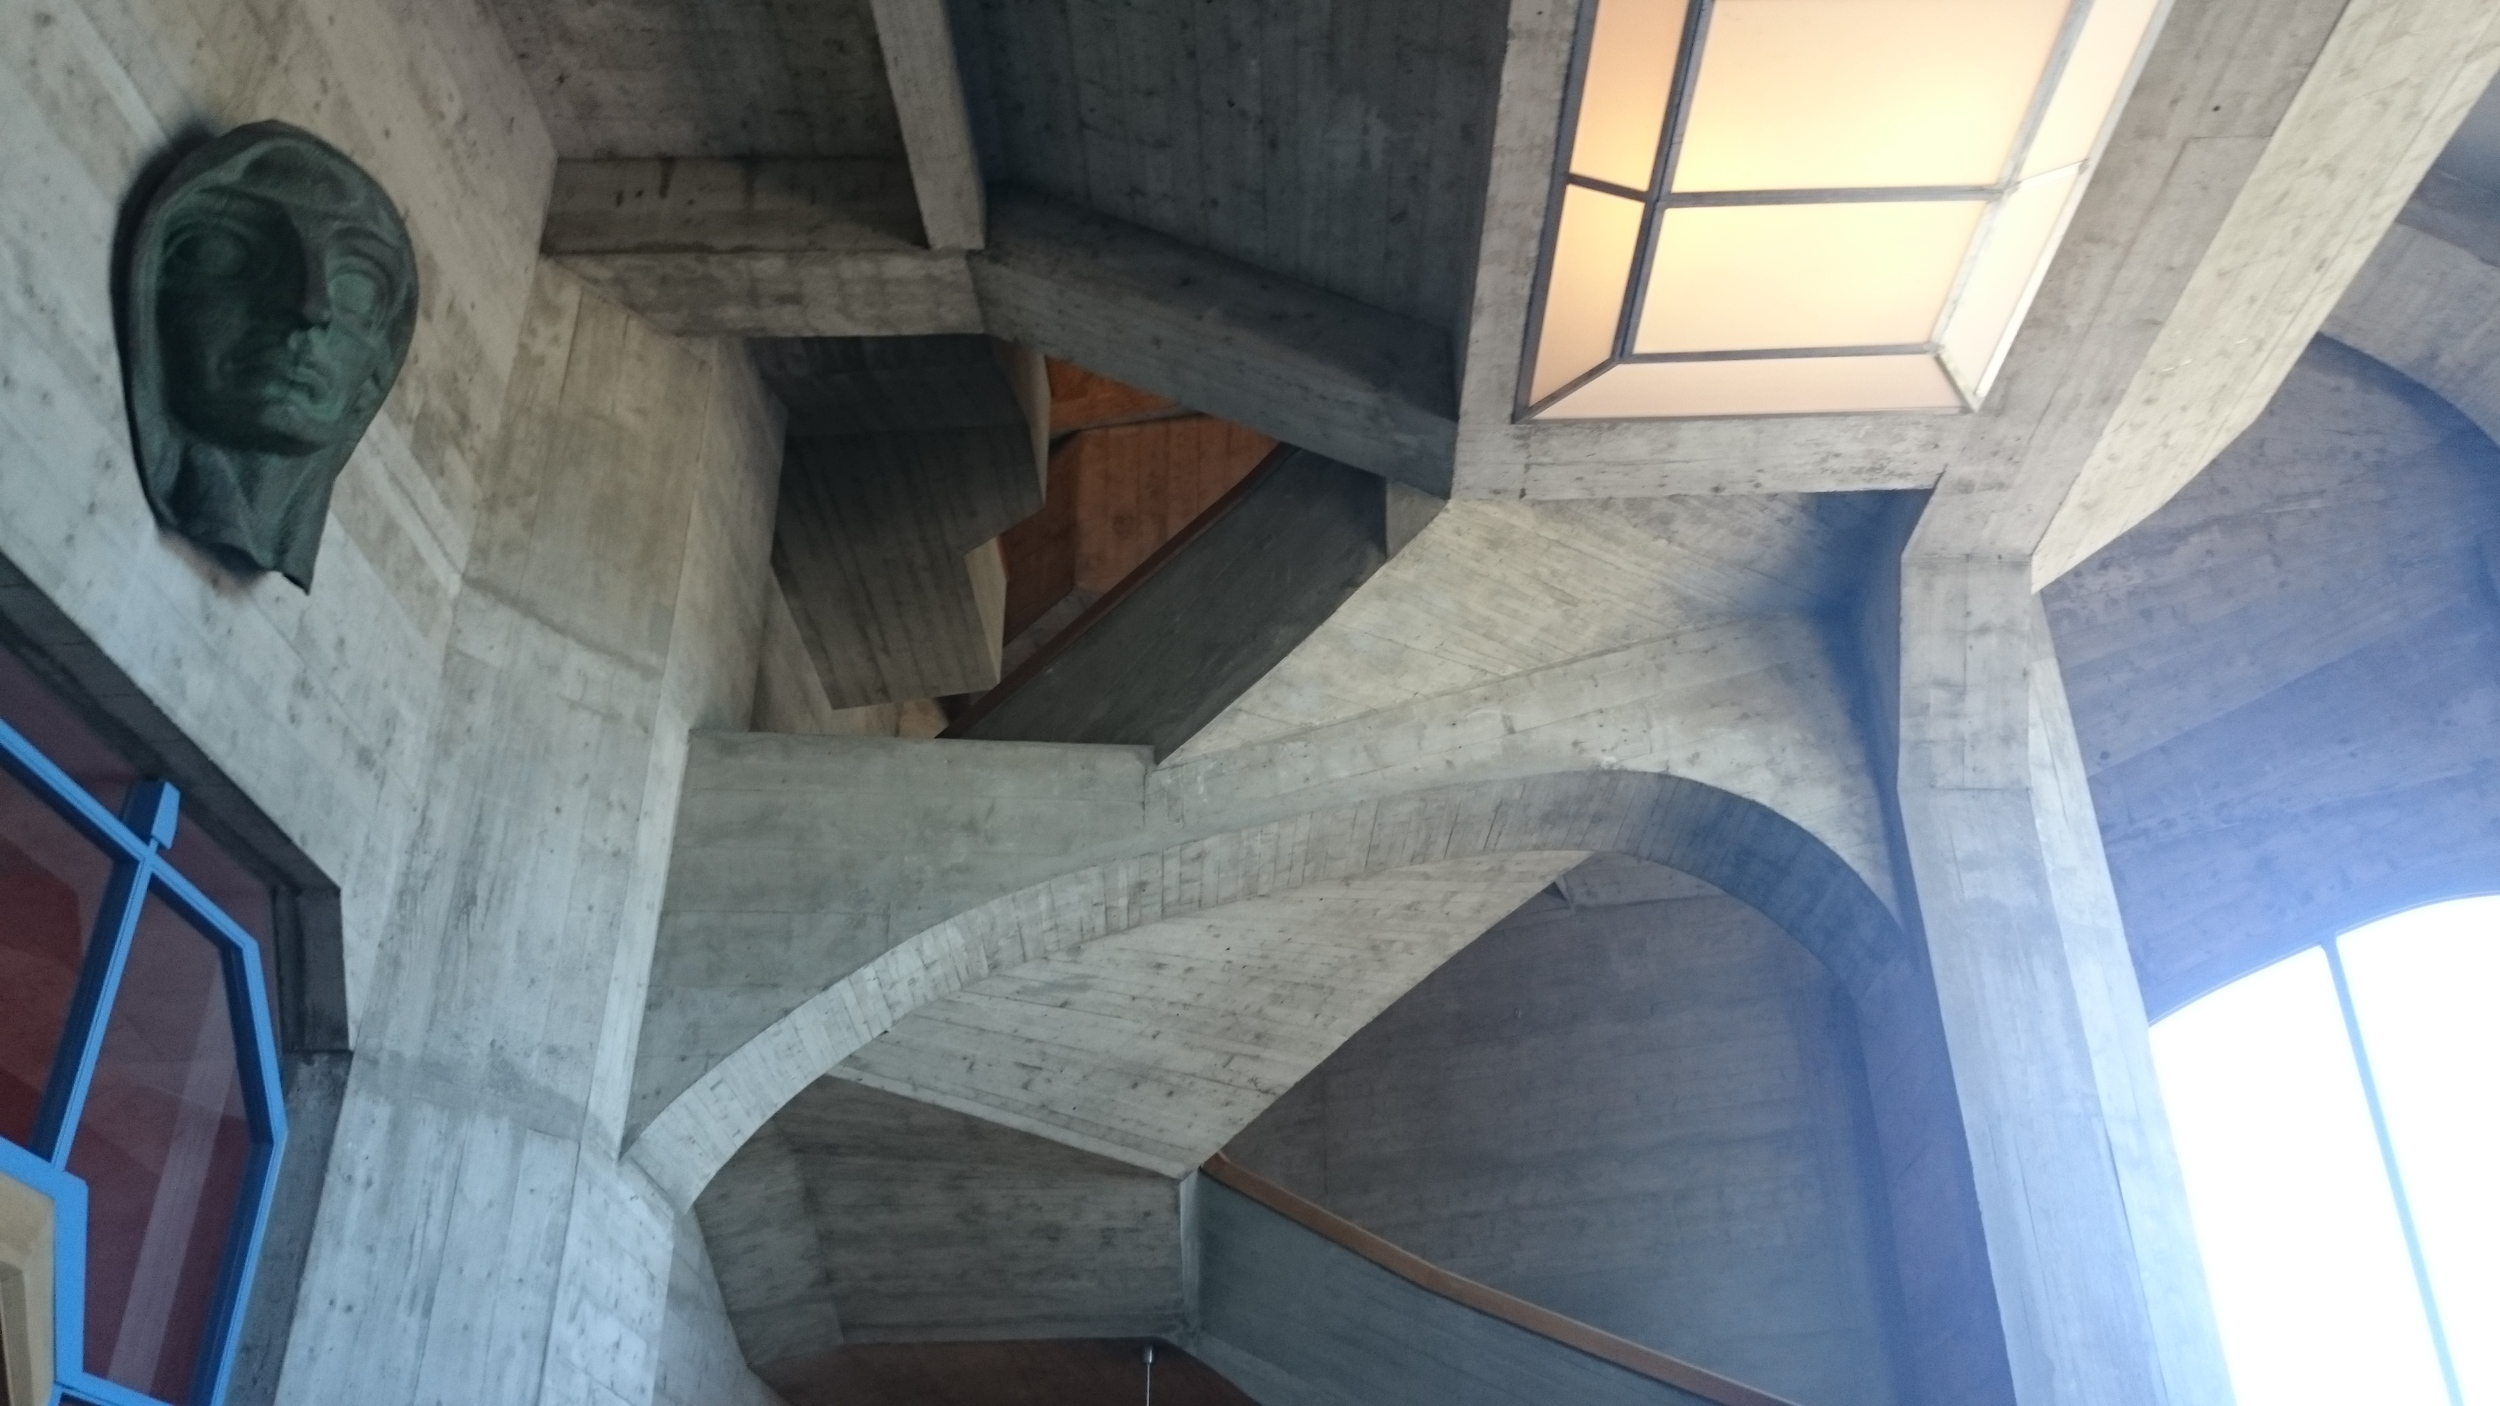 Structure and nice cast concrete